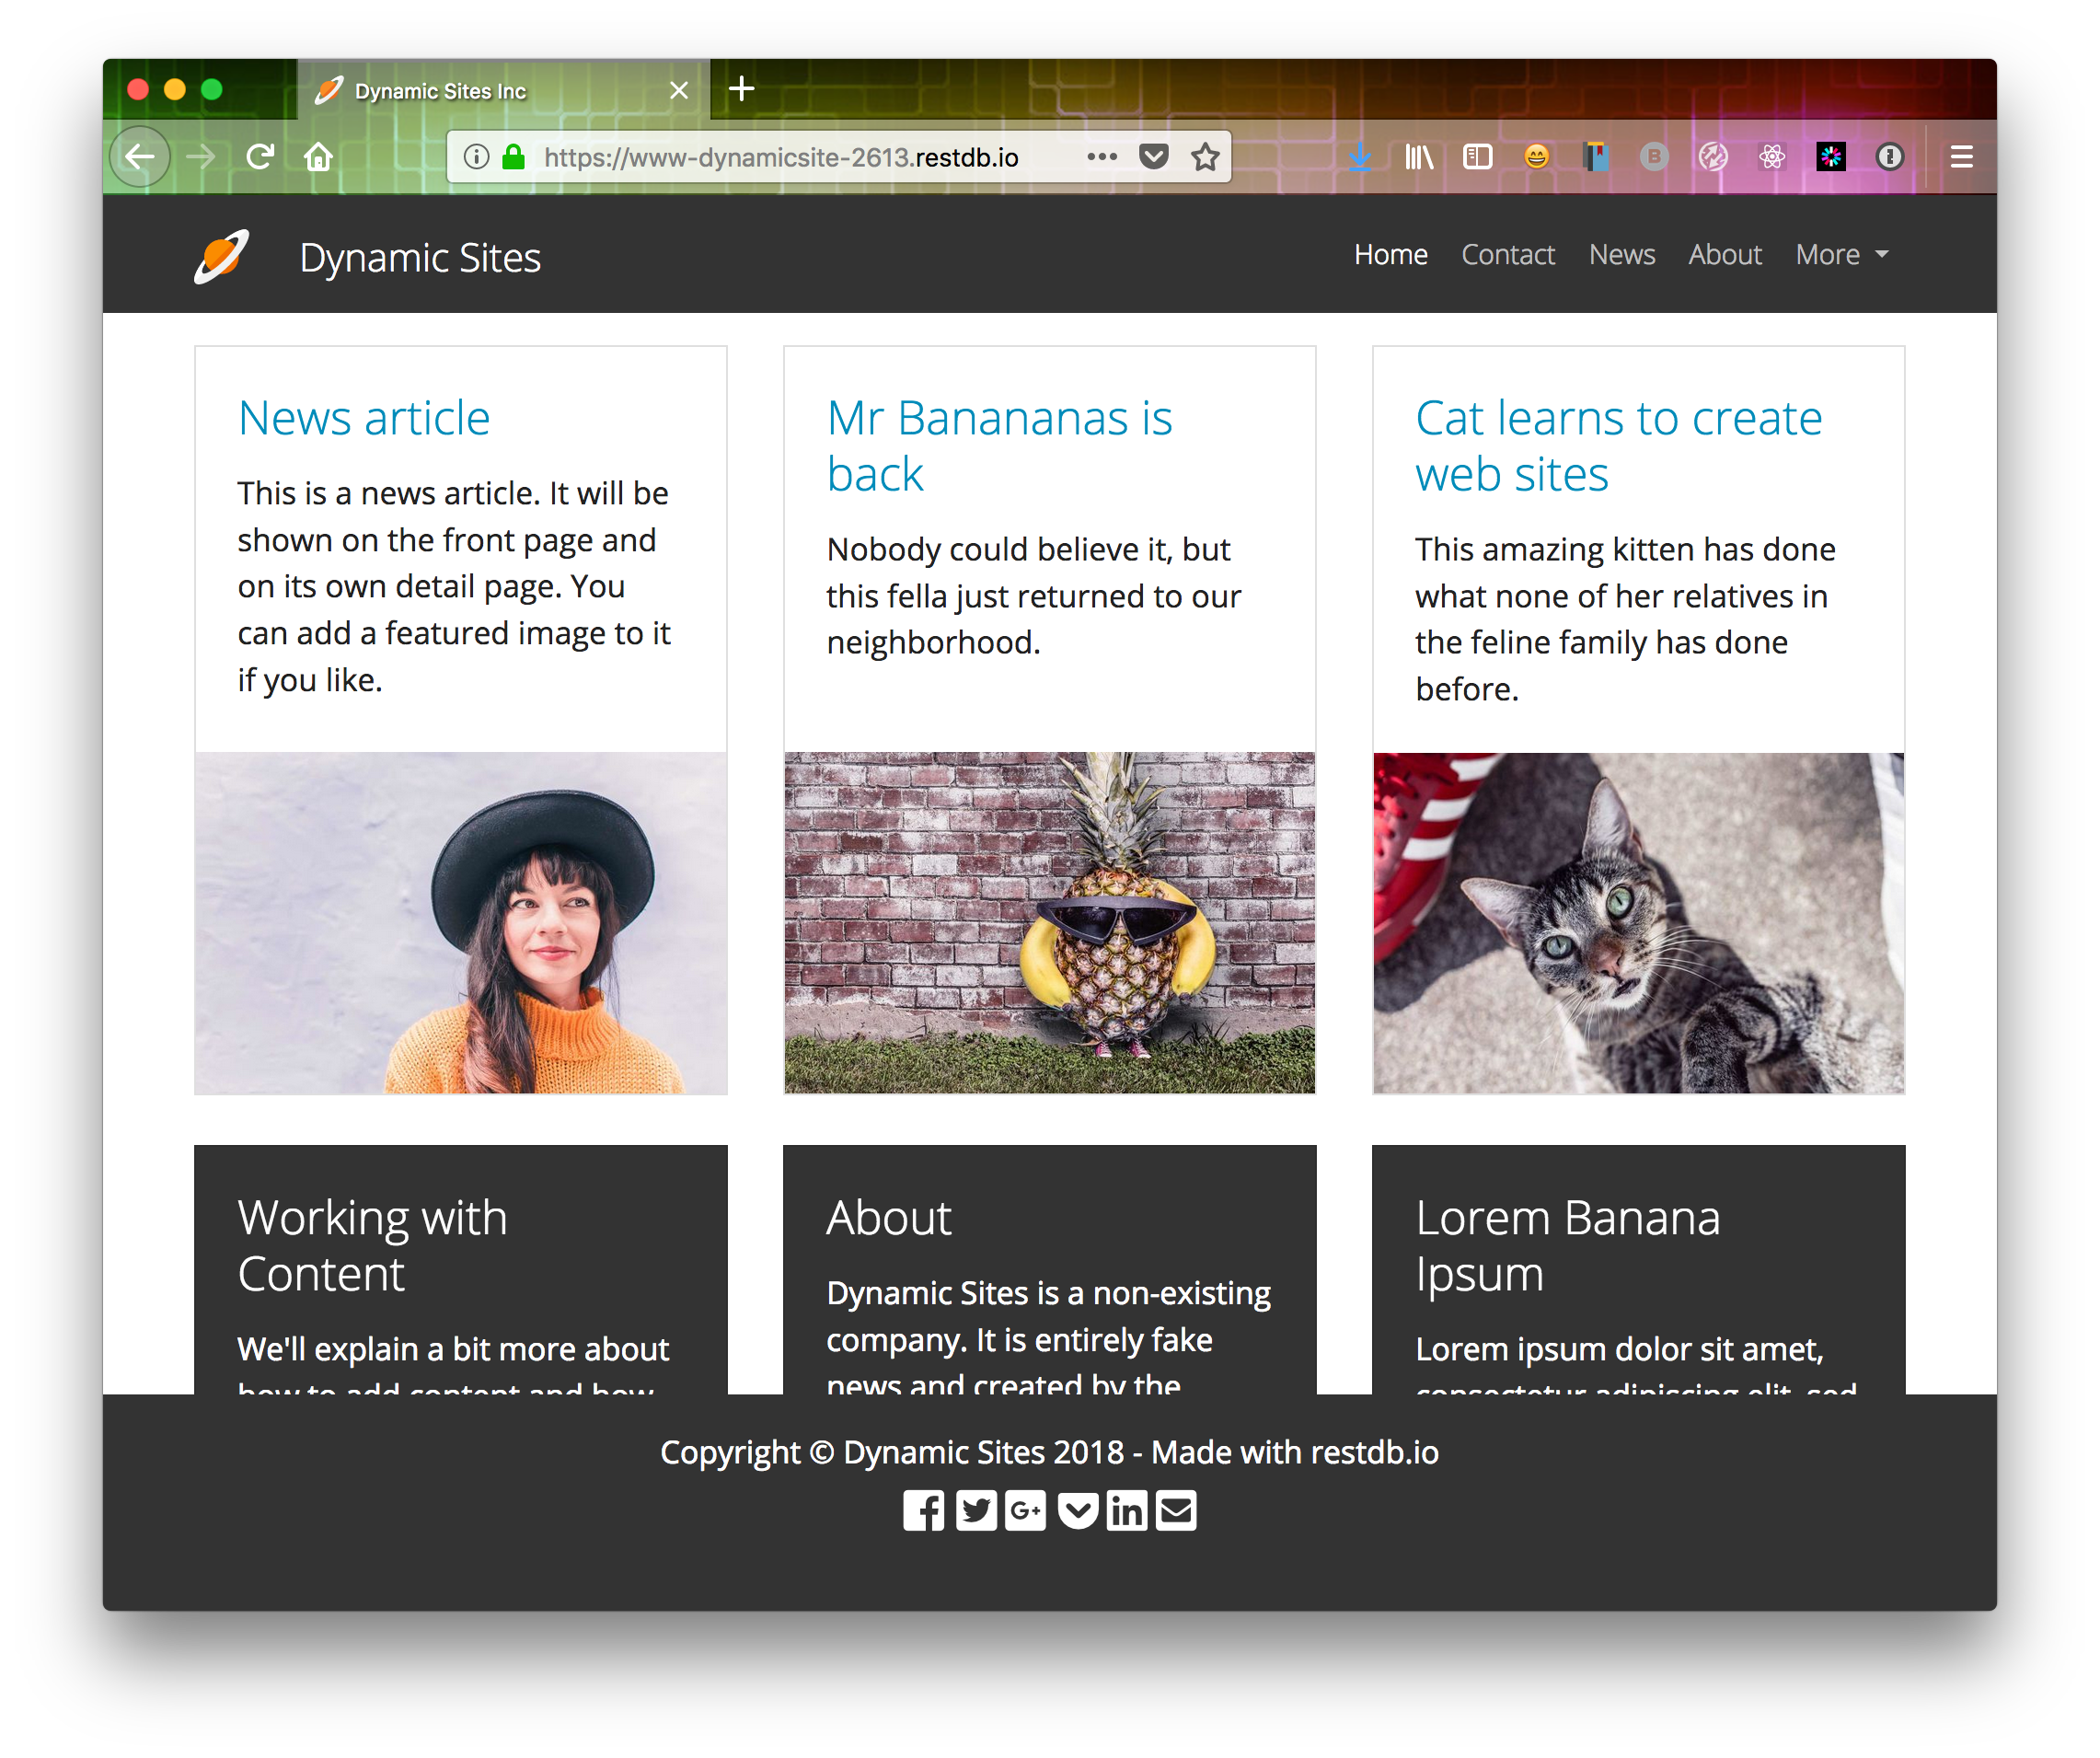 Dynamic Site frontpage scrolled